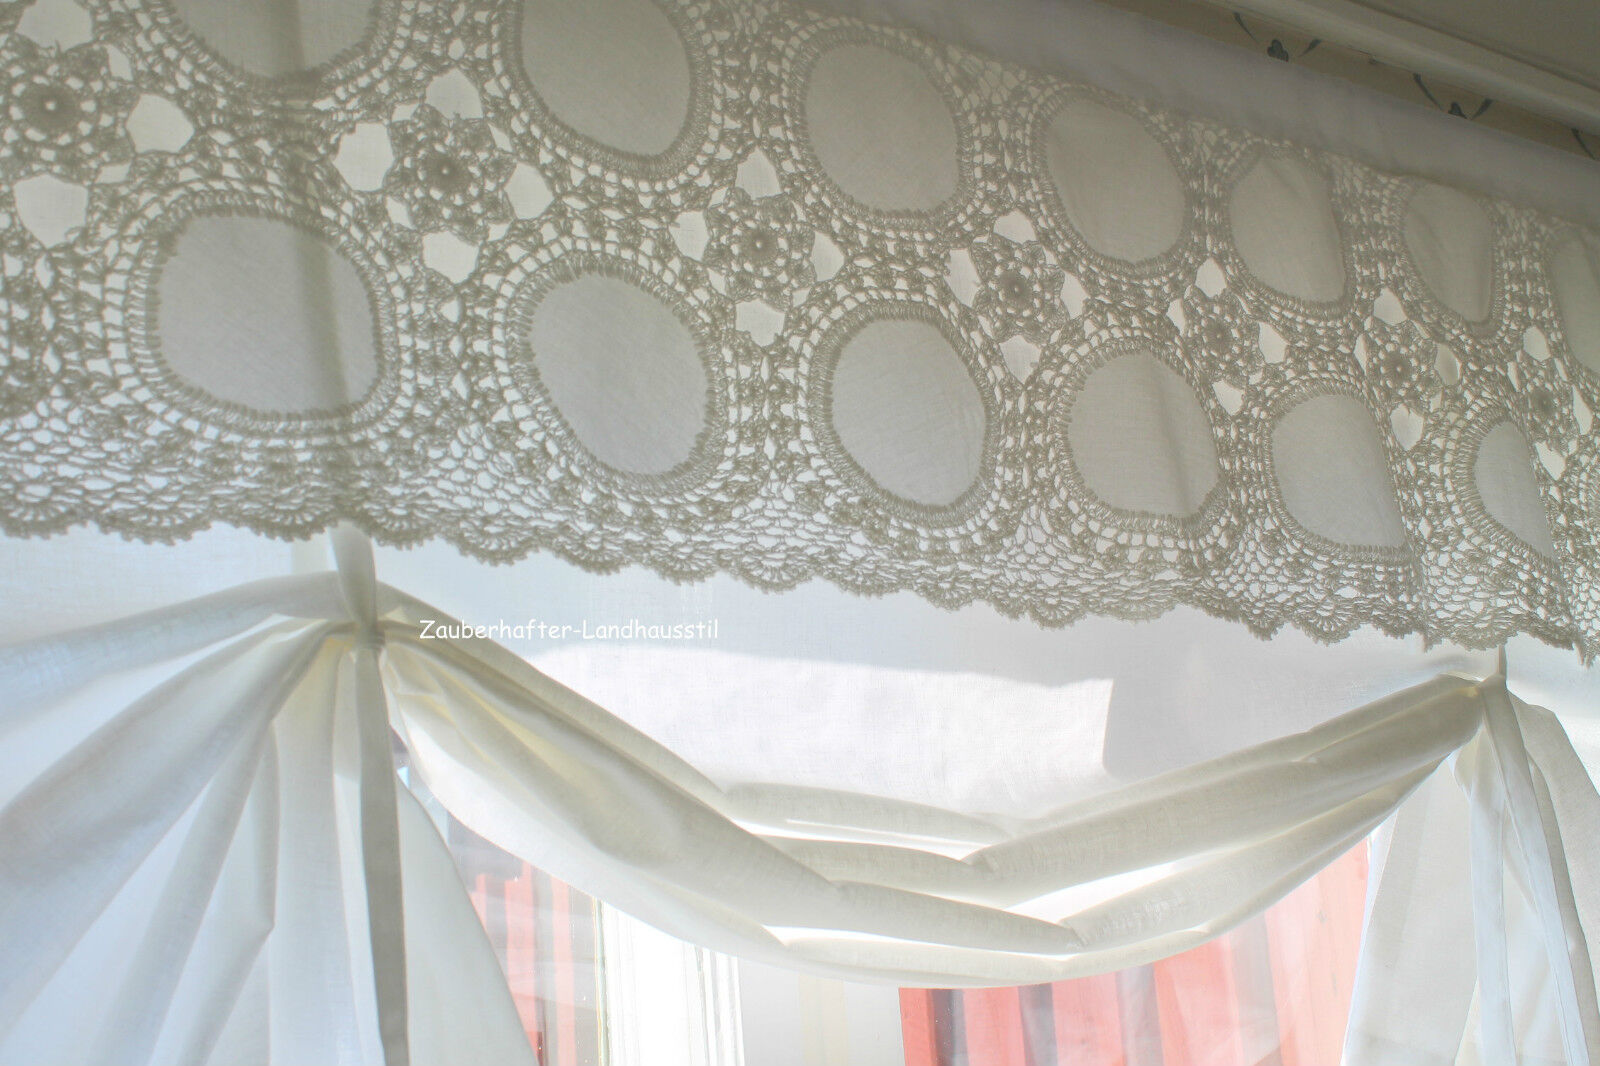 isabella scheiben raff gardine 100 120 140 160 shabby chic landhausstil curtain ebay. Black Bedroom Furniture Sets. Home Design Ideas